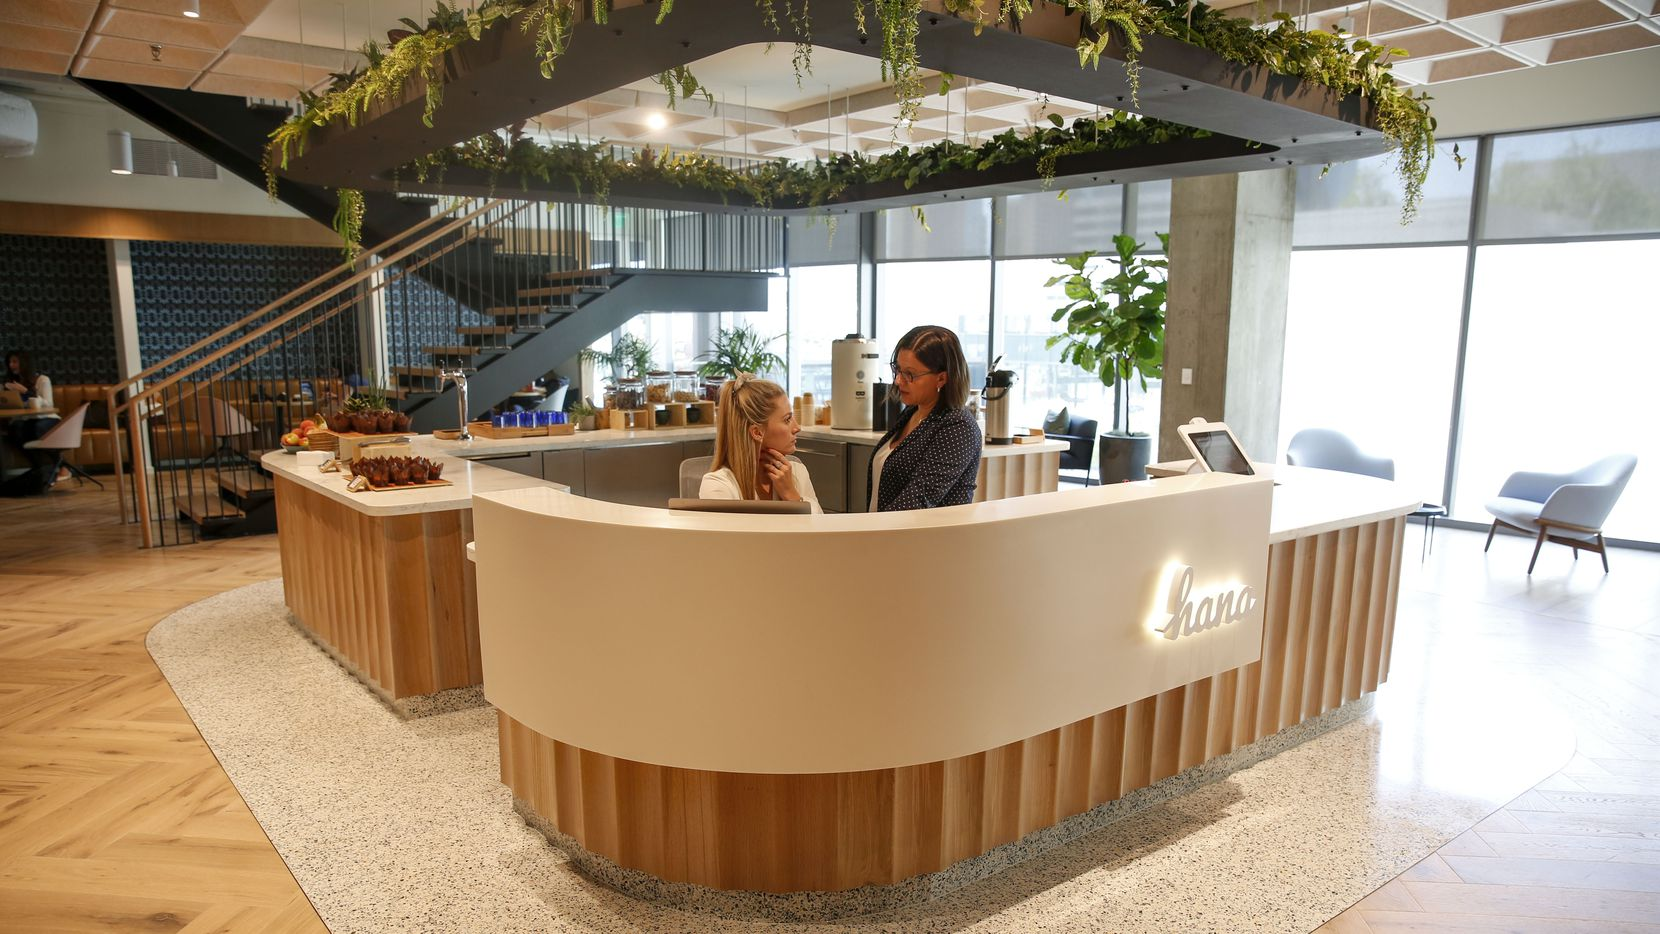 The front desk in the lobby at Hana, the first of a new nationwide chain of coworking centers opening in uptown Dallas.